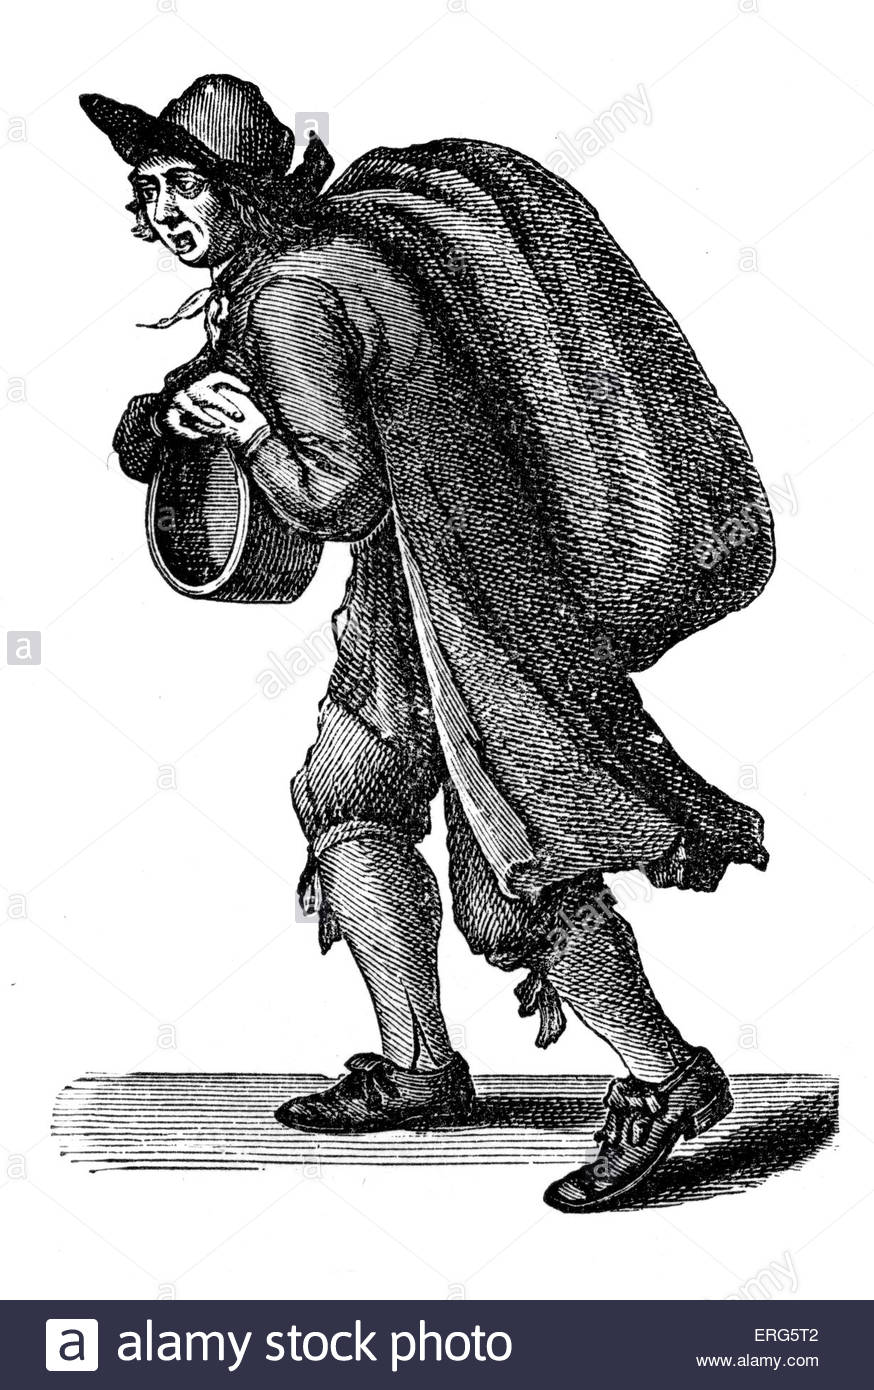 The Cries of London: 'Small Coal'e by Marcellus Laroon, 1689. Coal merchant. Series of etchings first published - Stock Image